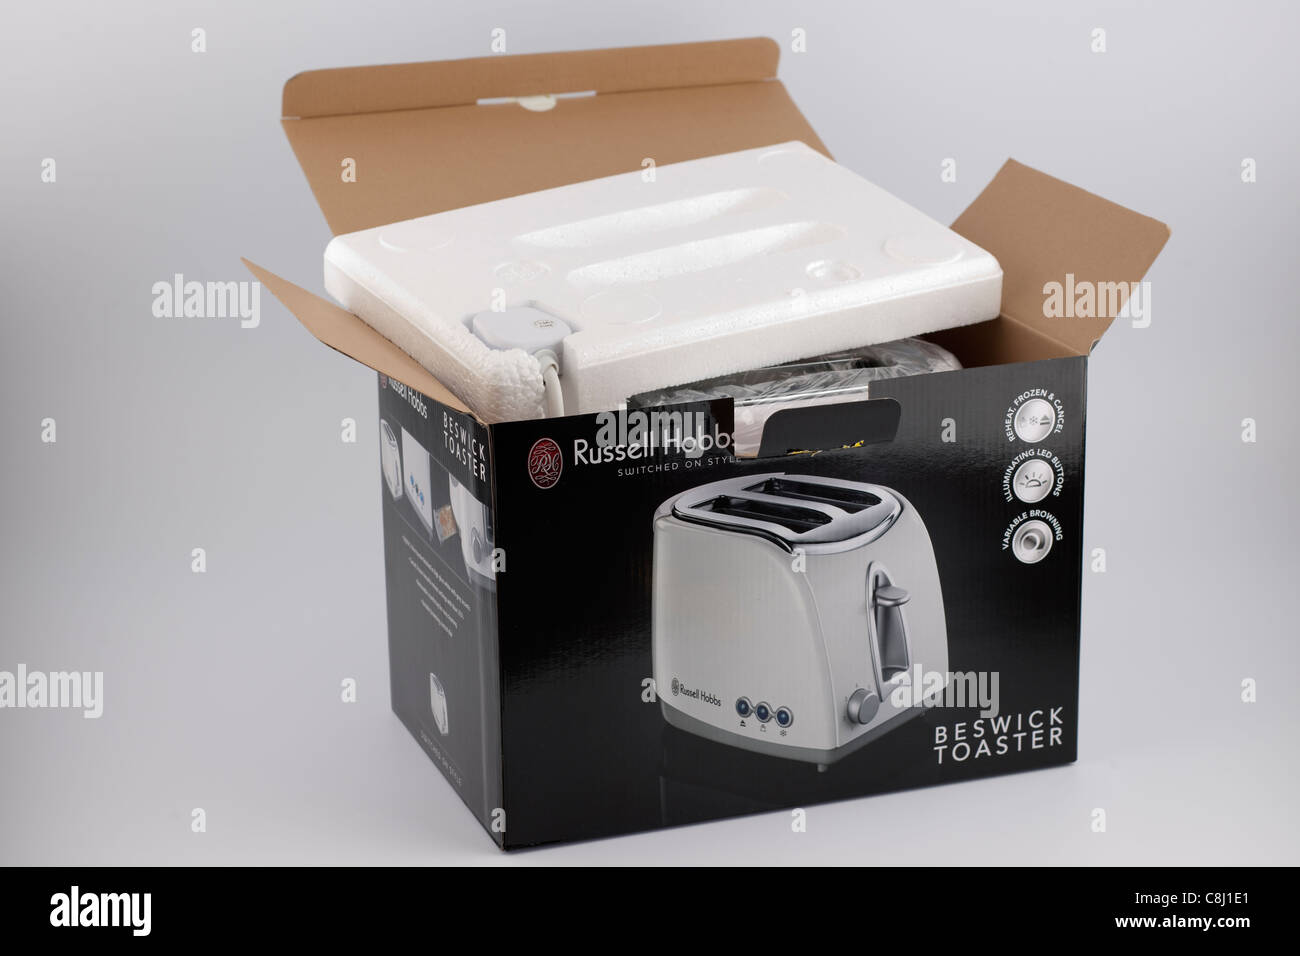 Unpacking a boxed product - Stock Image